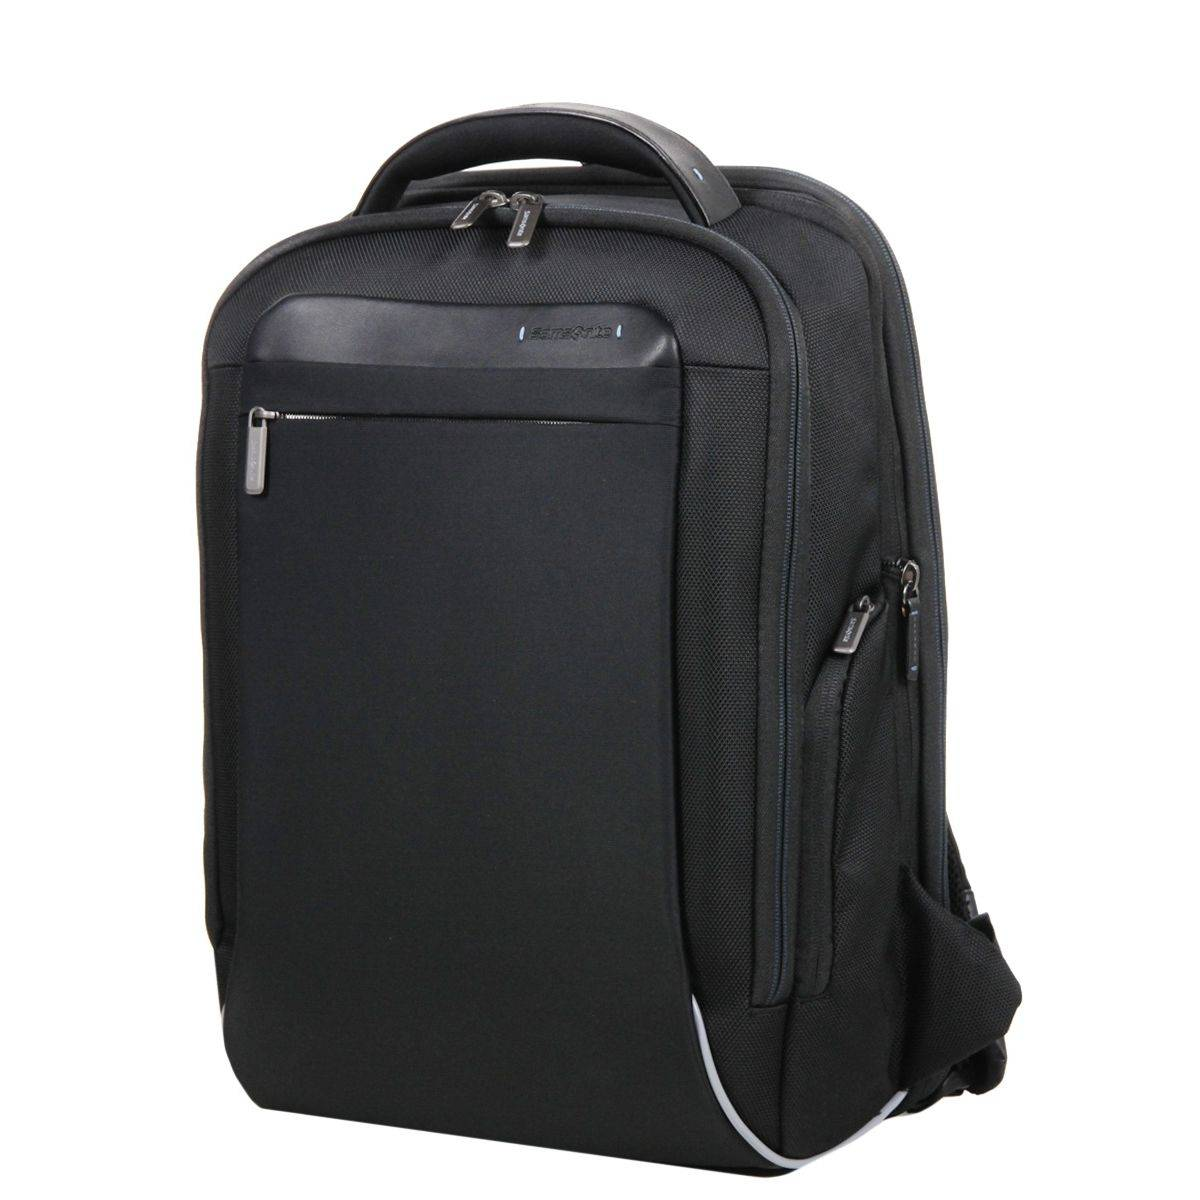 Samsonite Ordinateur Dos À Sac 16 WEHD9I2